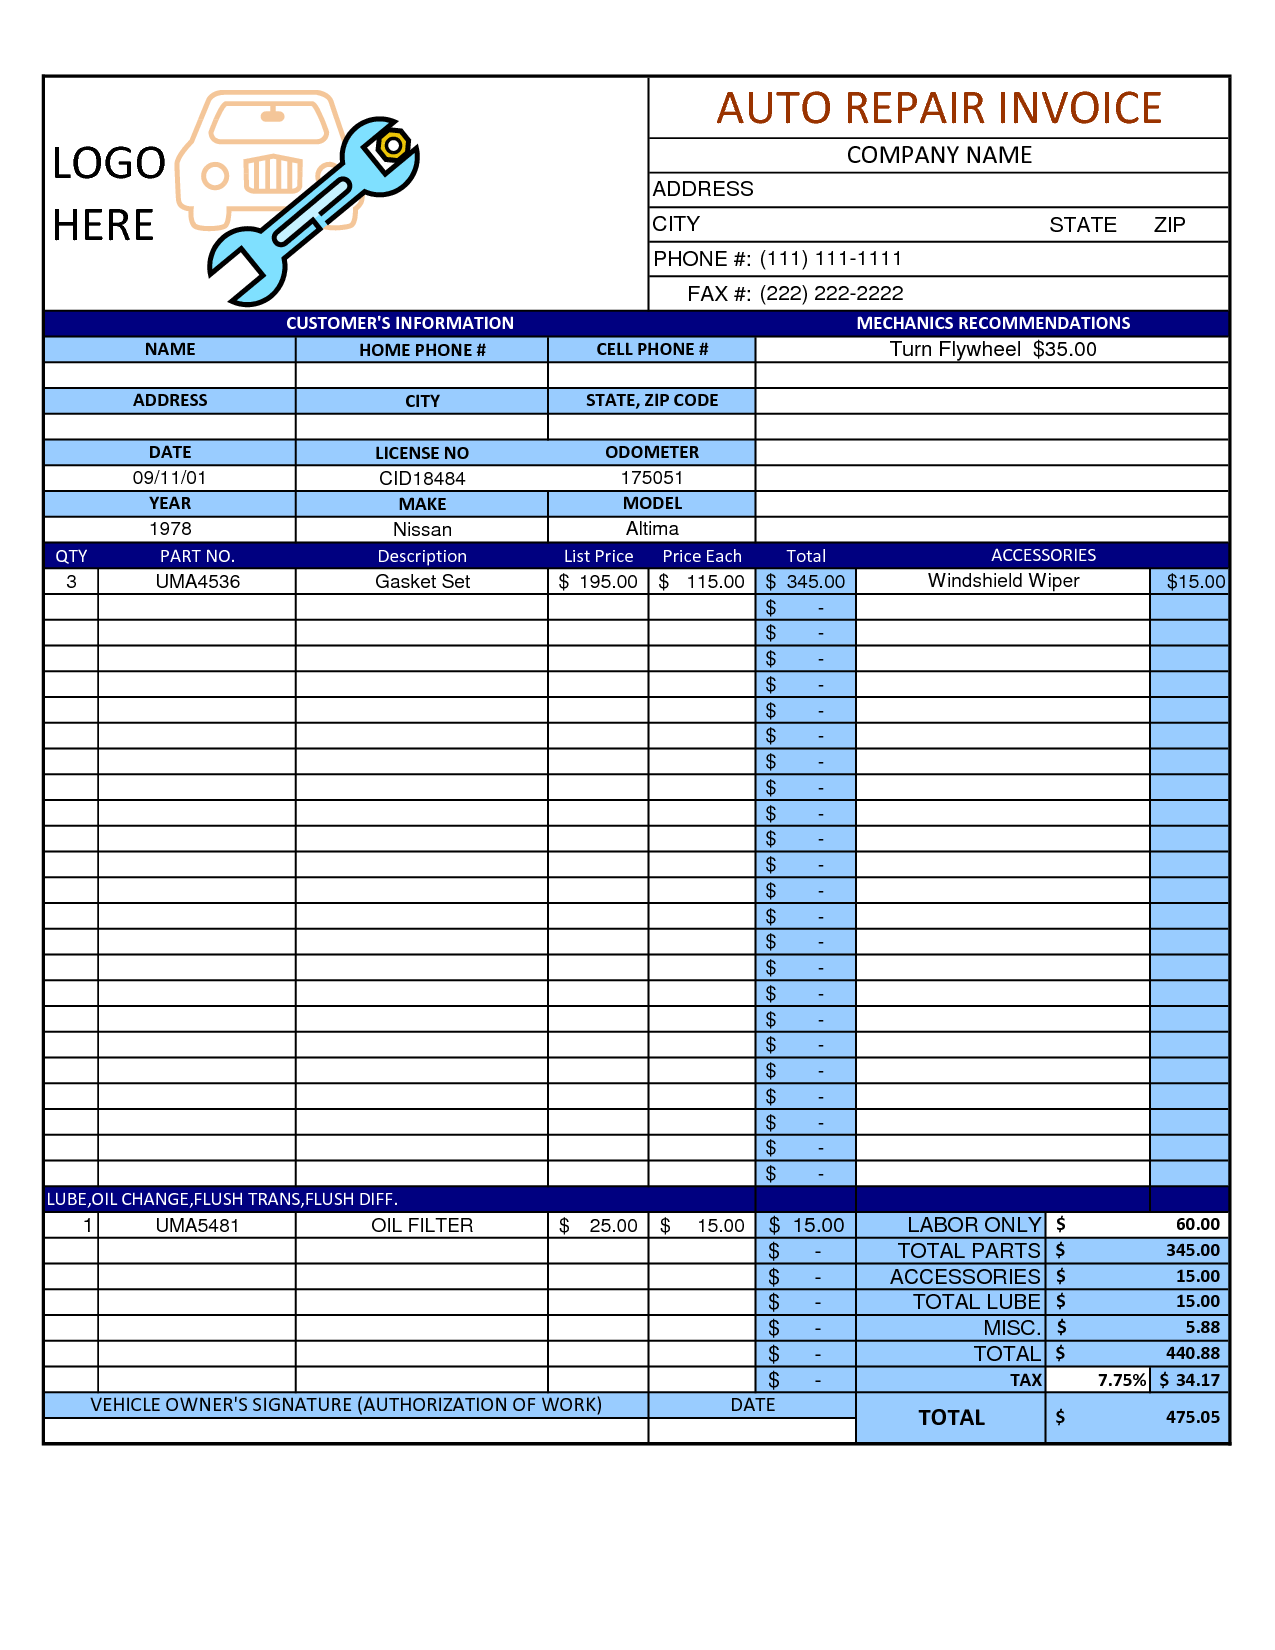 Mechanic shop invoice scope of work template pinteres for Florida auto repair invoice